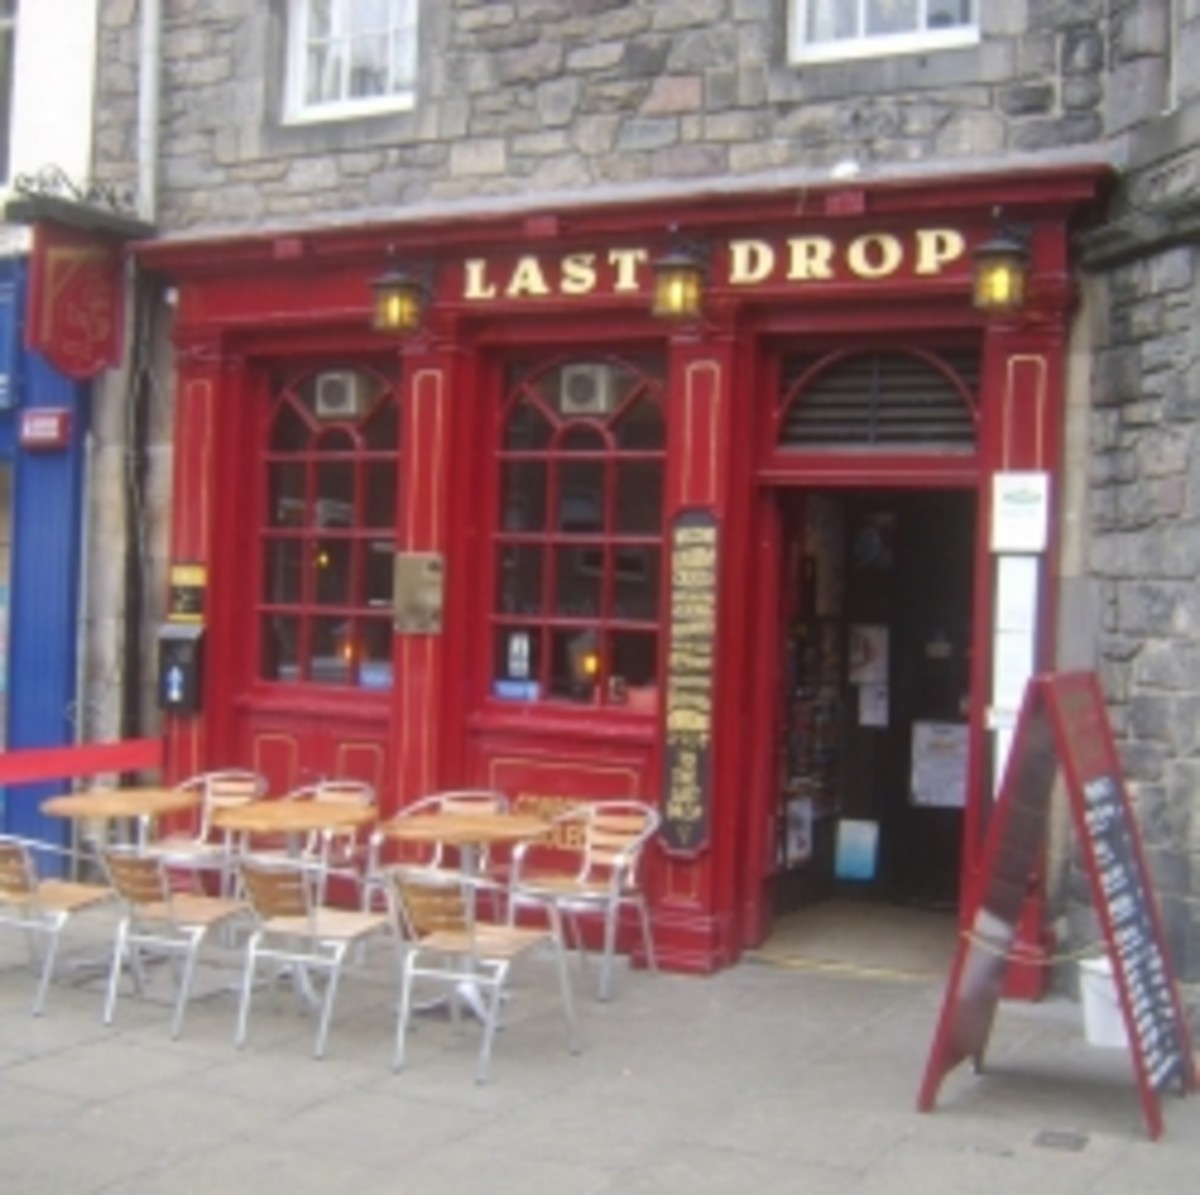 The Last Drop, Edinburgh